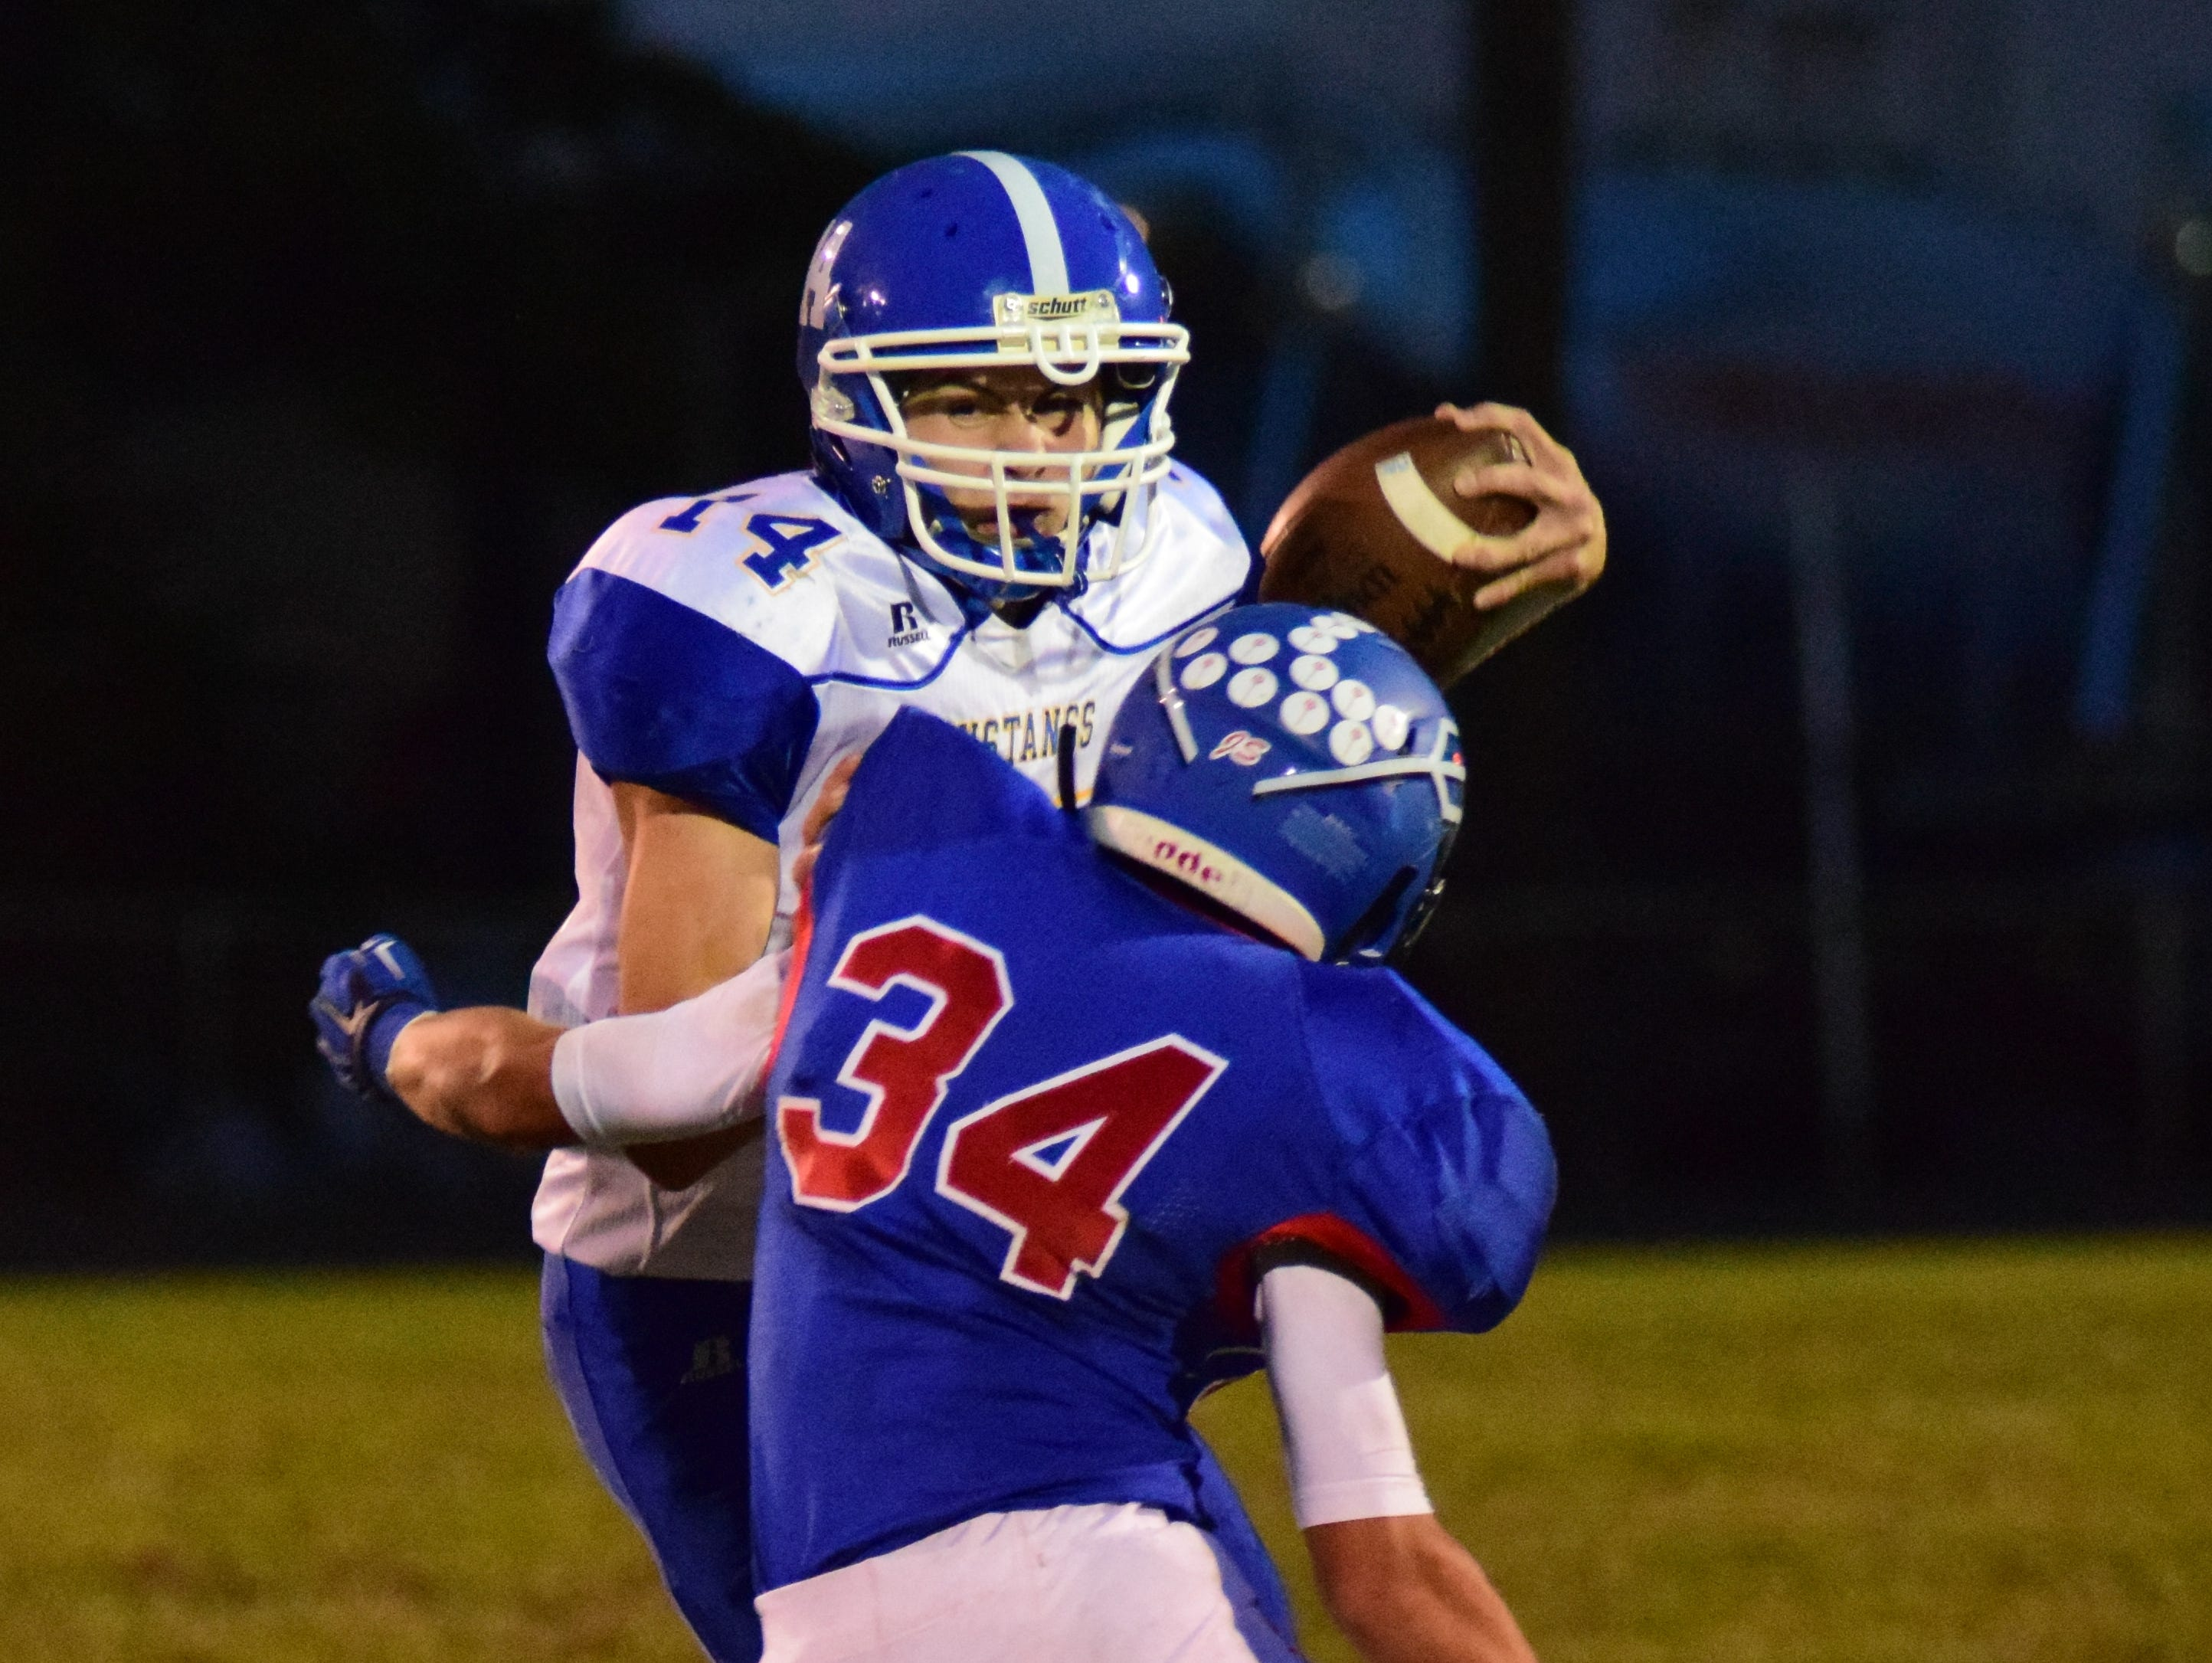 Reading's Aiden Ashbrock (34) wraps up Madeira's Kyle Johnson before he can gain first down yards.